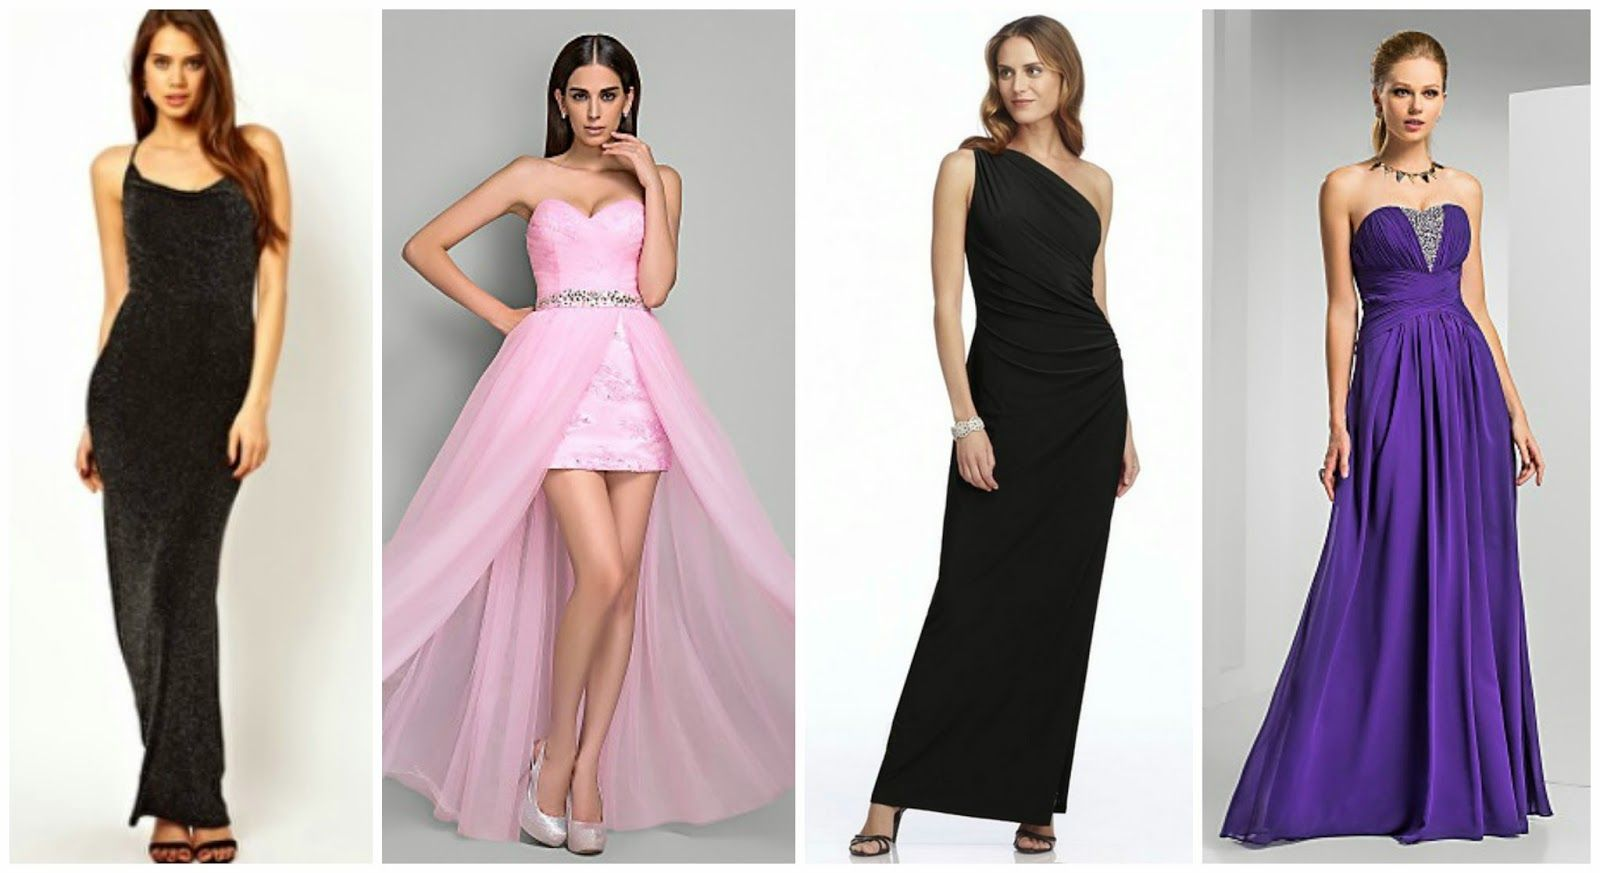 Teen style prom dresses under prom promdress under save